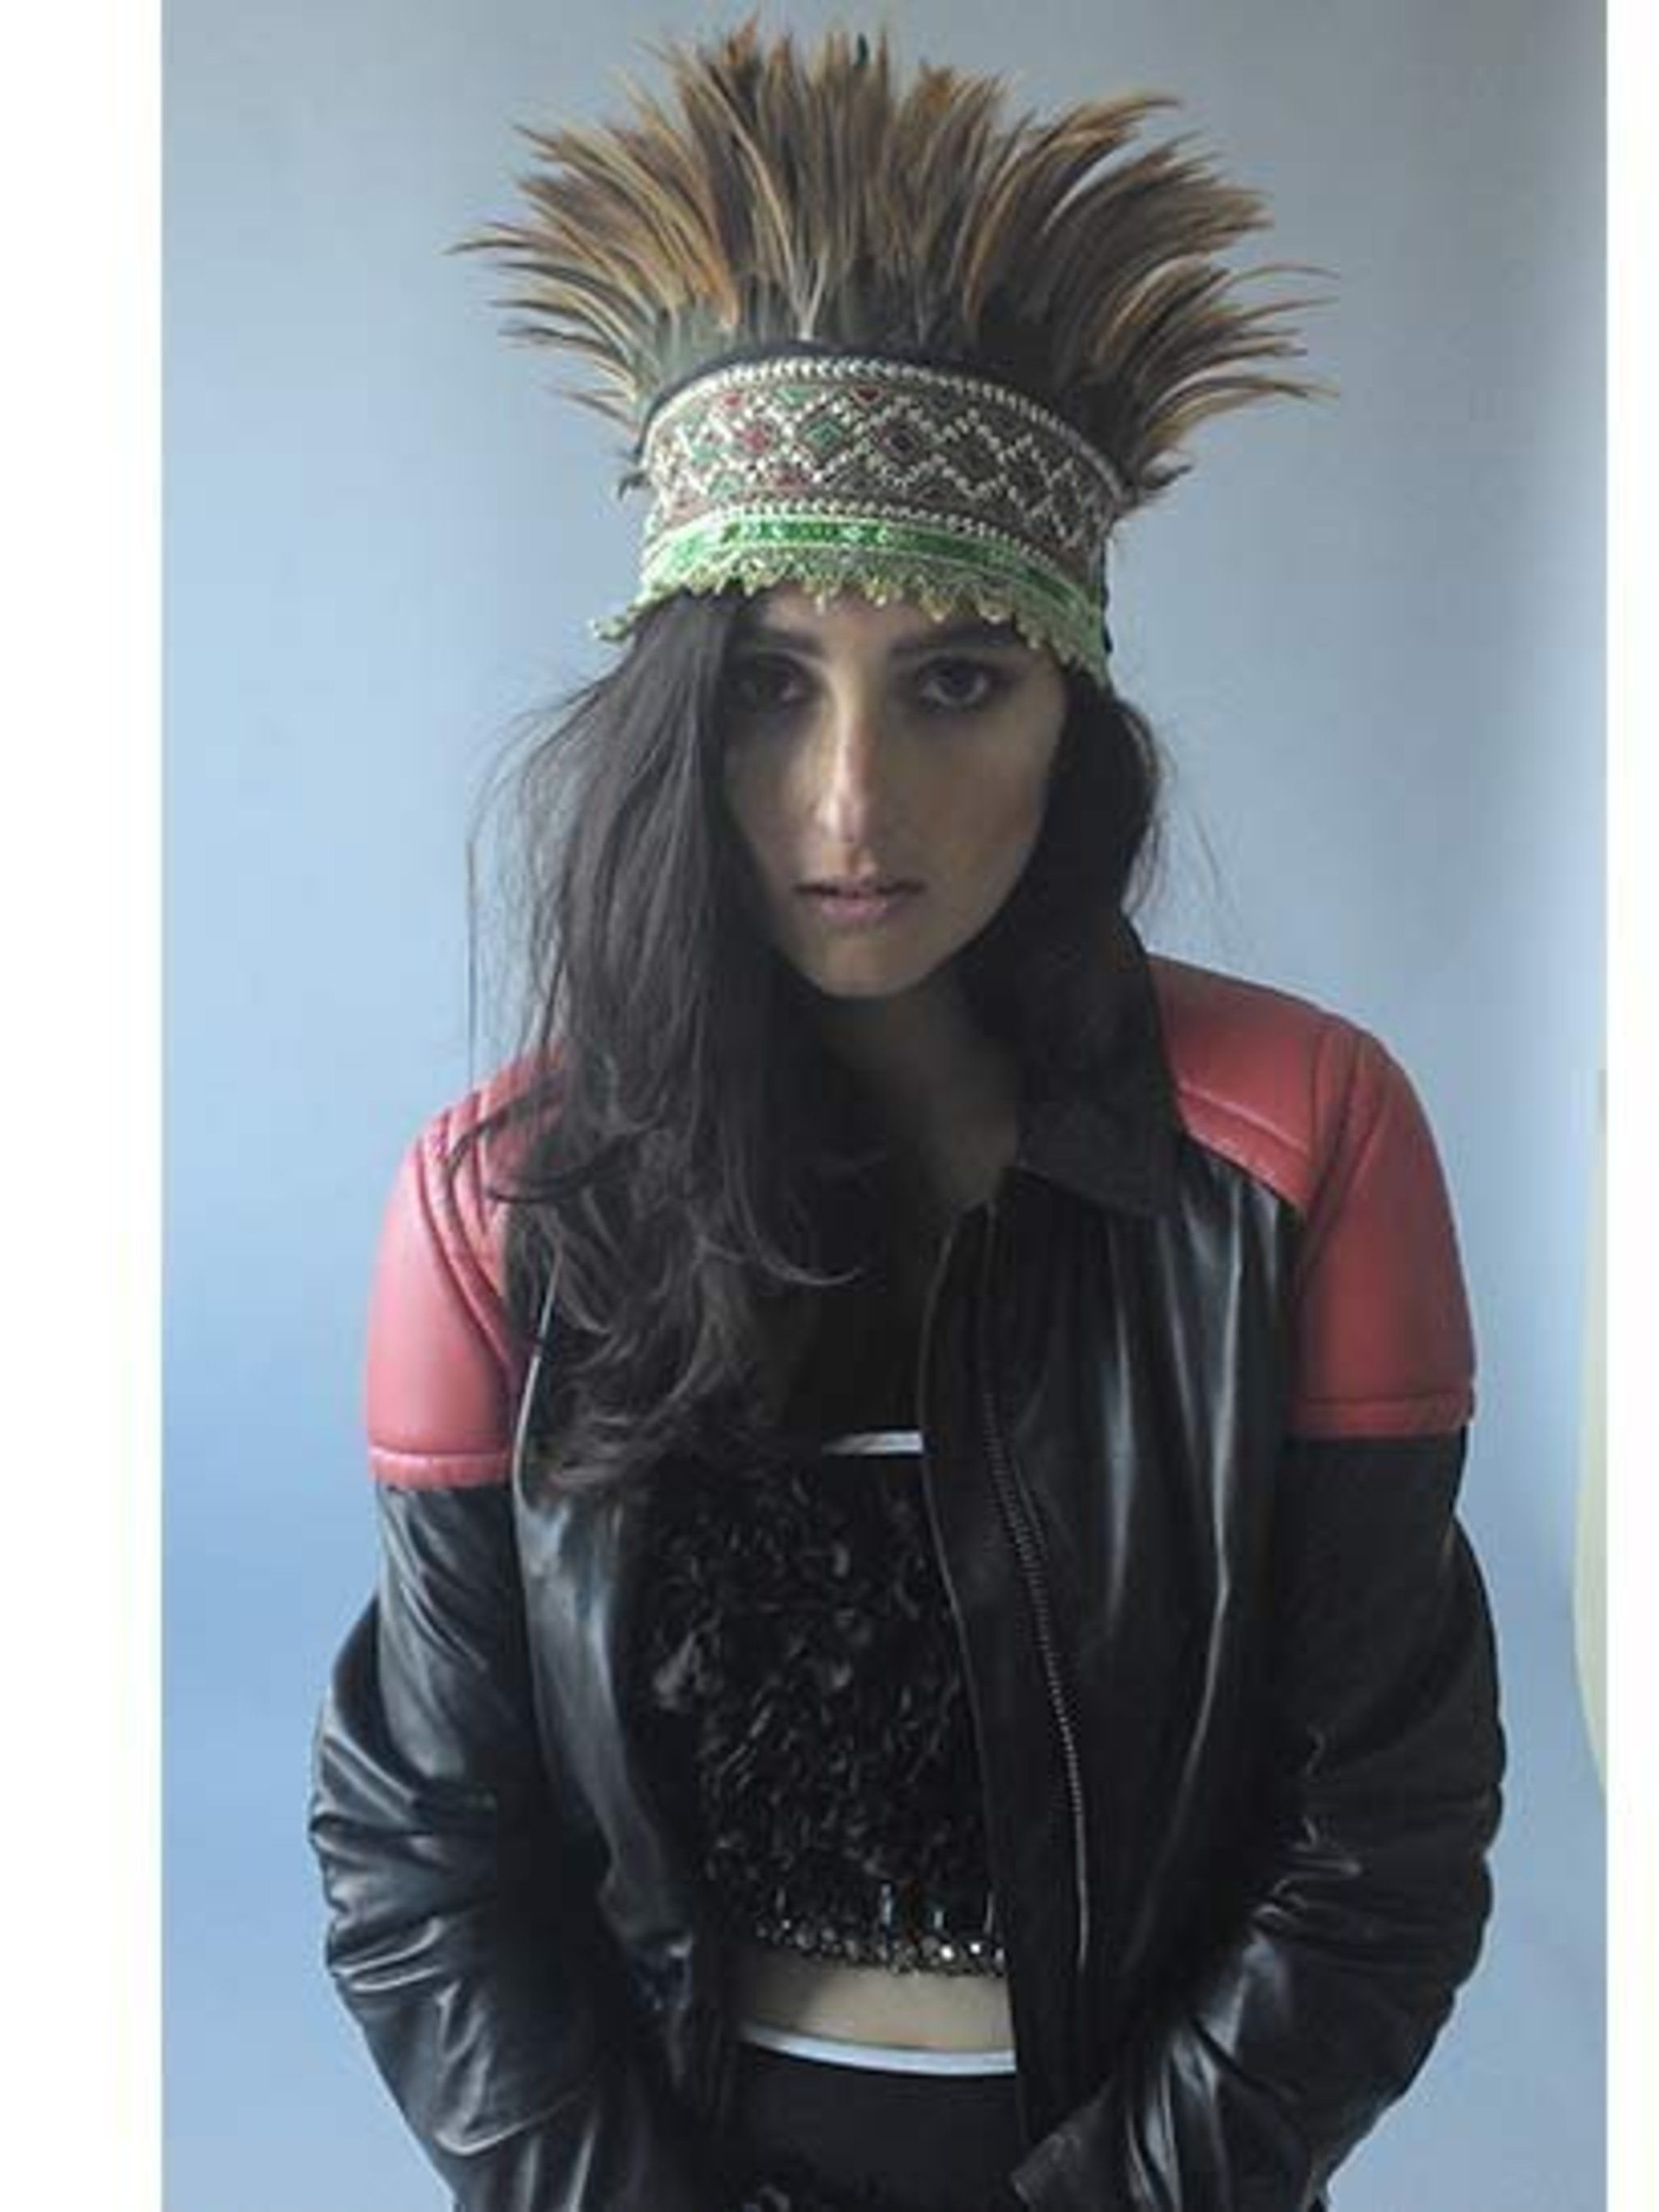 """<p>Banks wearing <a href=""""http://www.marni.com/home.asp?tskay=B84CE7A2"""">Marni</a> and a leather jacket by <a href=""""http://www.ganni.com/home/"""">Ganni</a>. </p>"""